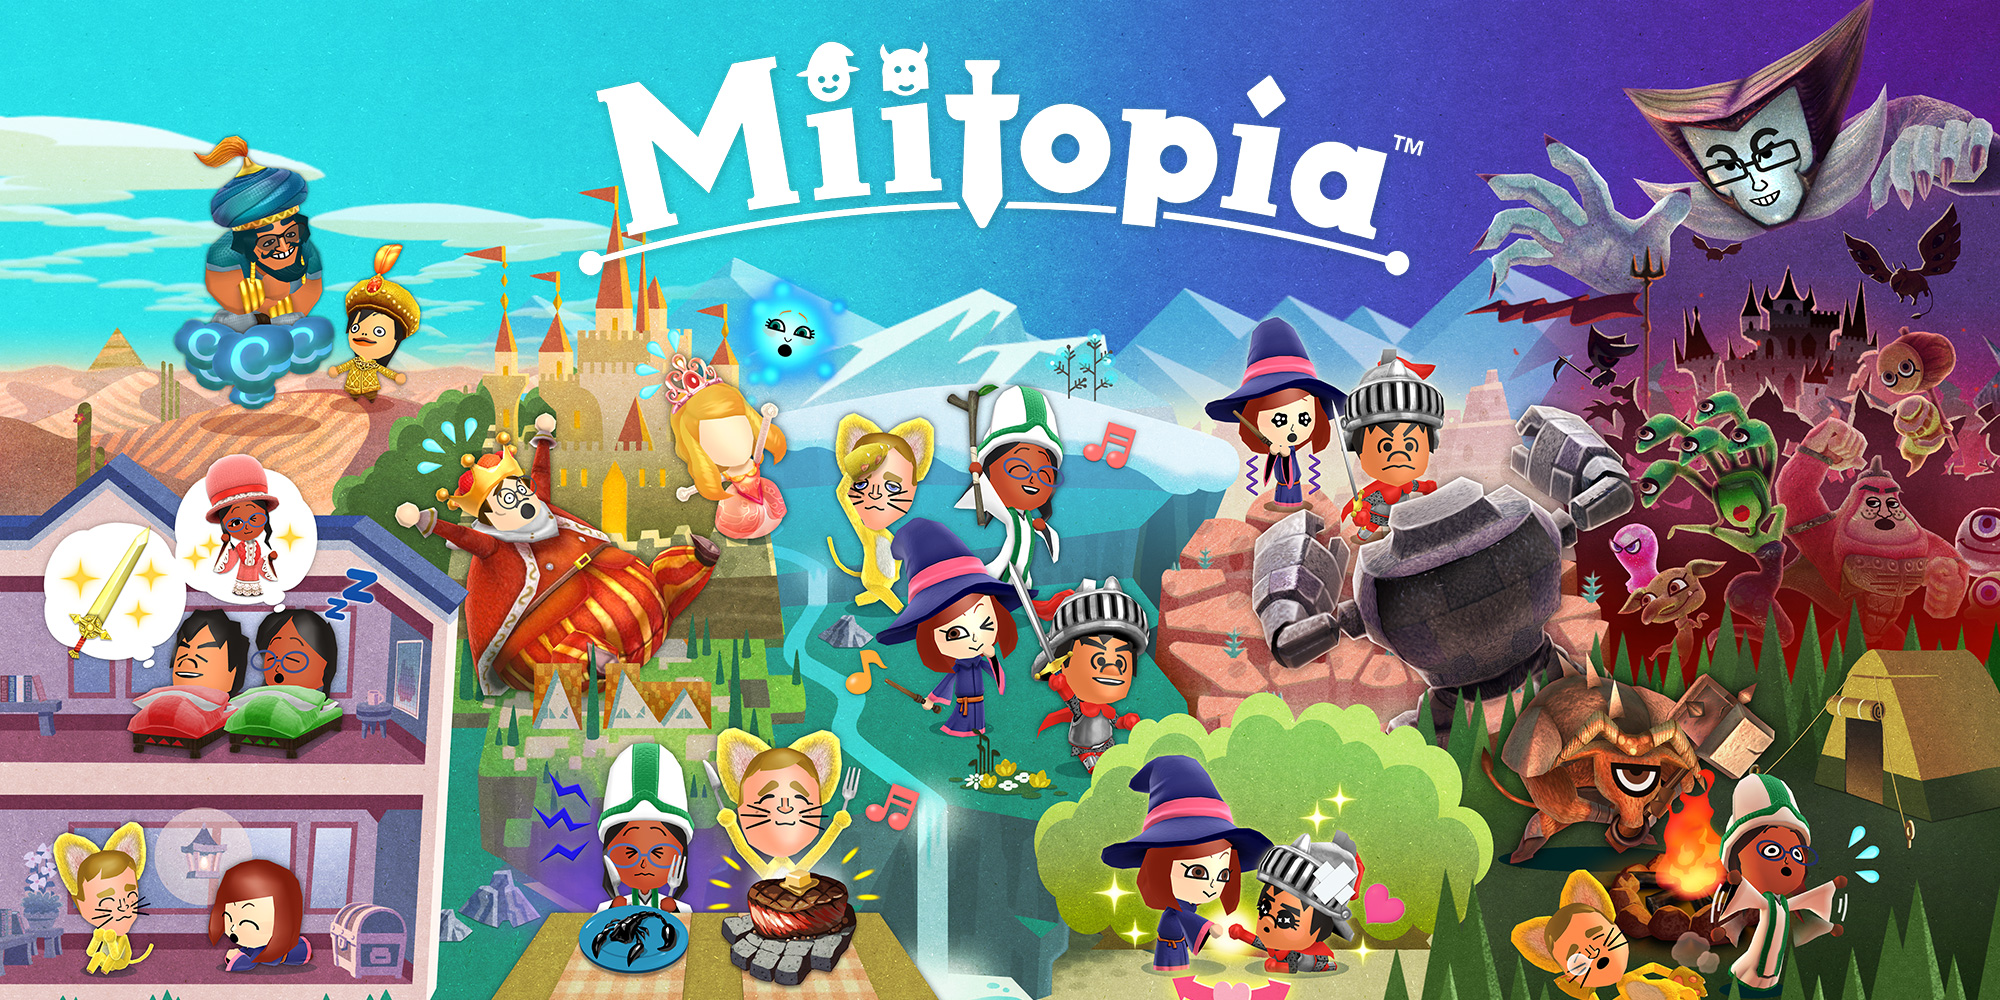 Add DanTDM to your Miitopia adventure!